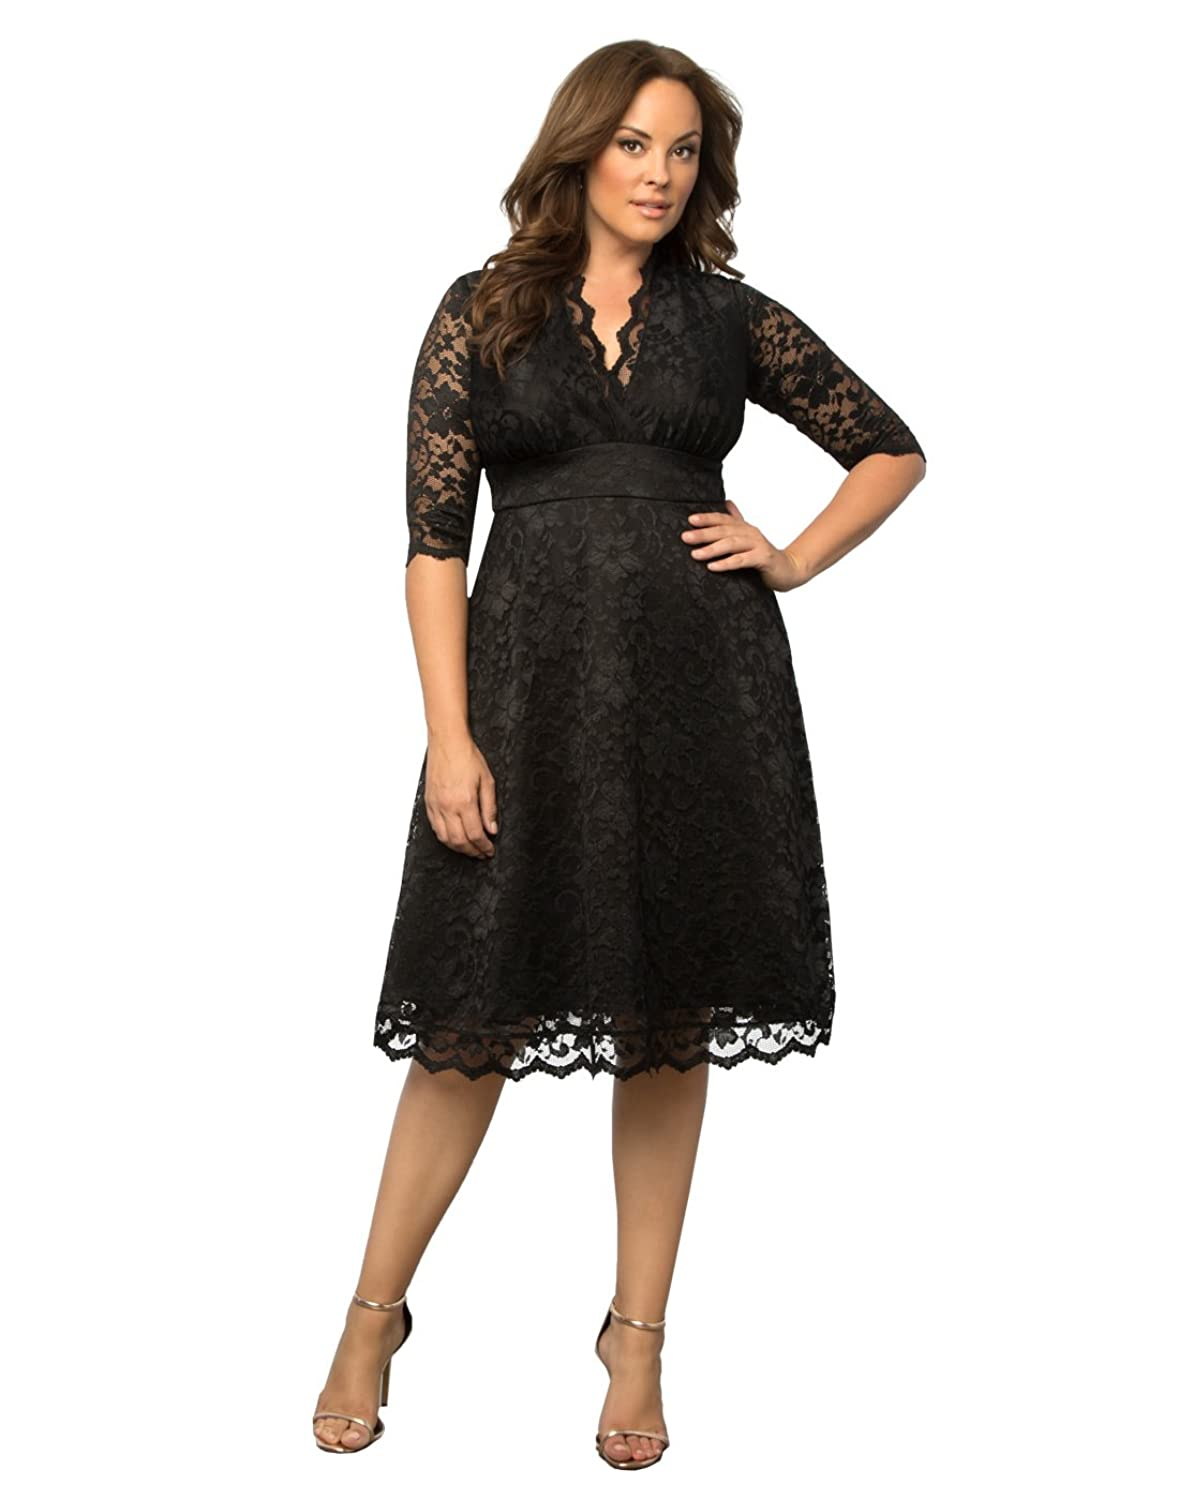 1960s Plus Size Dresses & Retro Mod Fashion Kiyonna Womens Plus Size Mademoiselle Lace Dress $164.00 AT vintagedancer.com